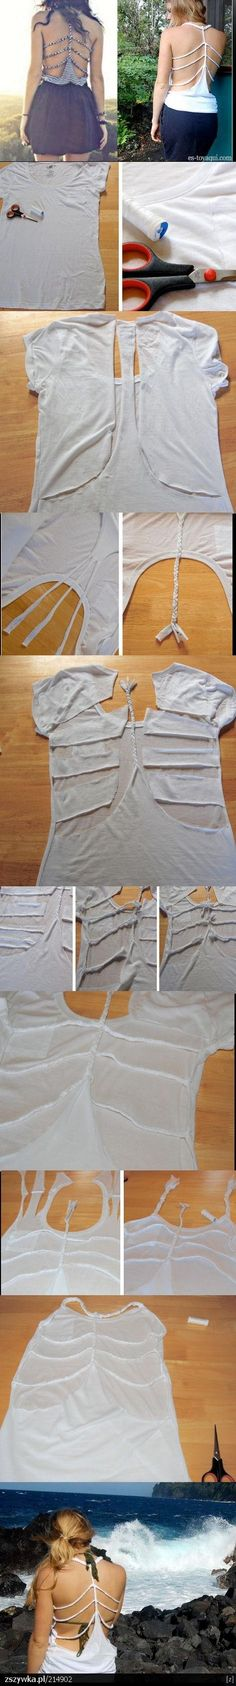 T-shirt!!! Making one of these or swim suit cover up!!!